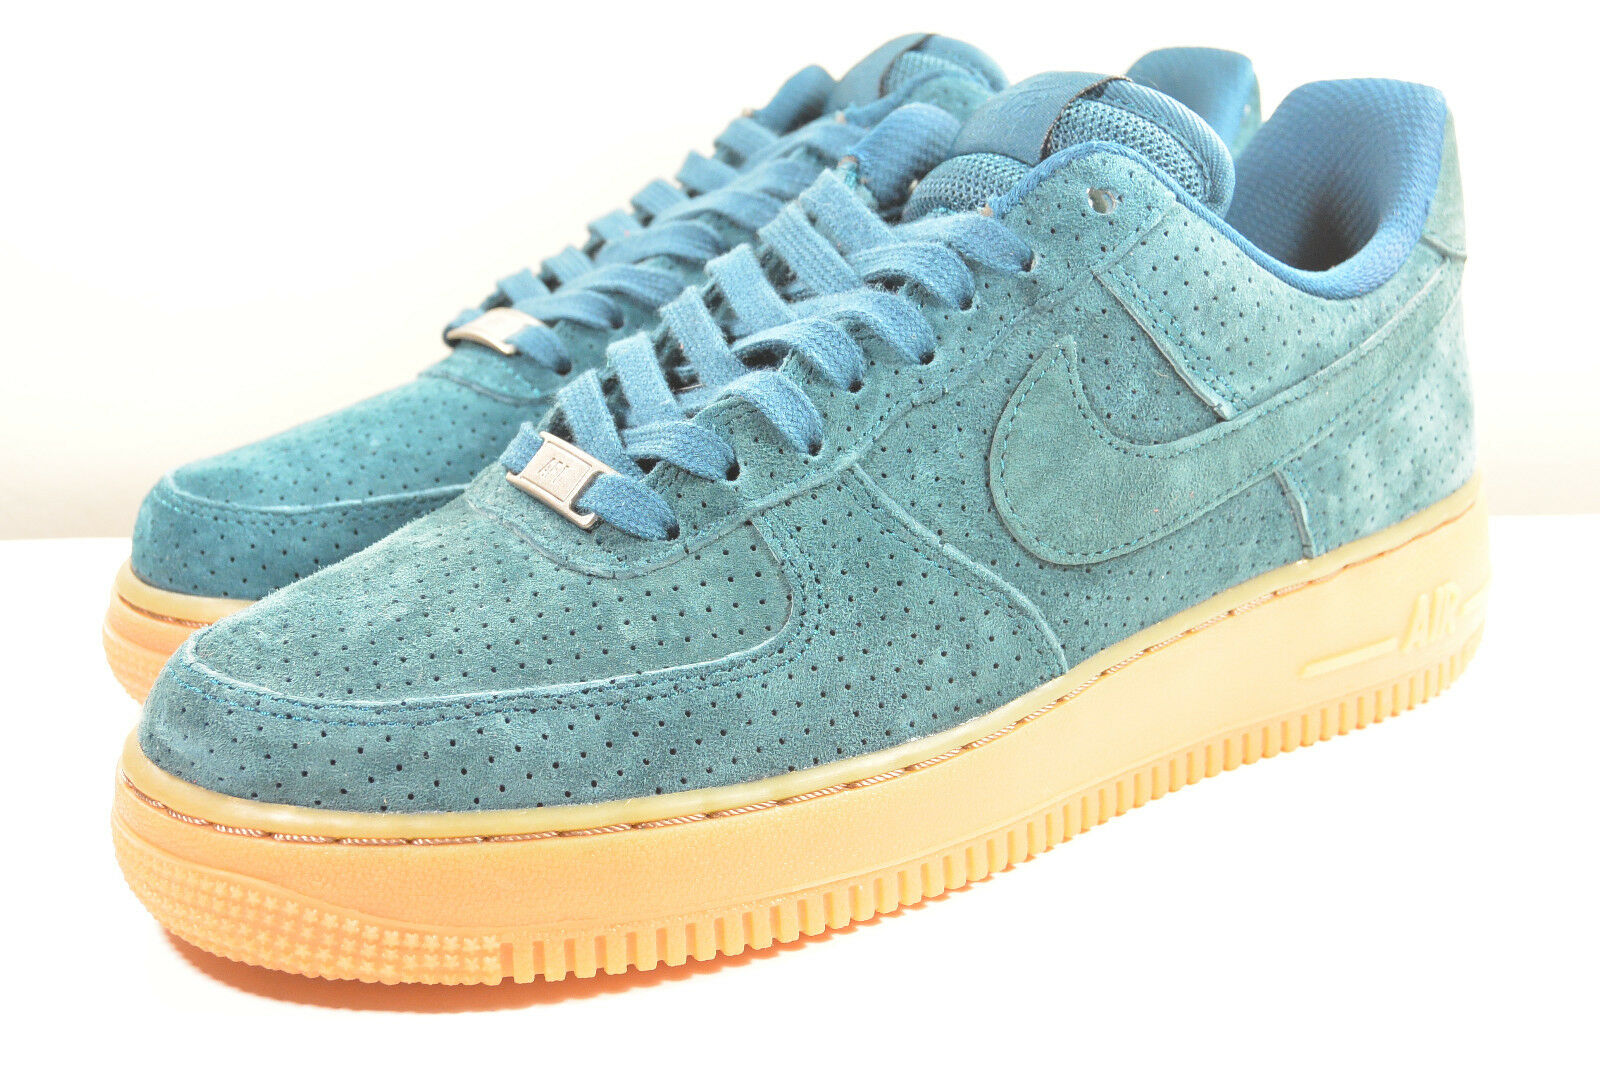 DS NIKE 2015 AIR FORCE 1 SUEDE TEAL M 7.5   WMN 9 SUPREME HYPERFUSE VINTAGE